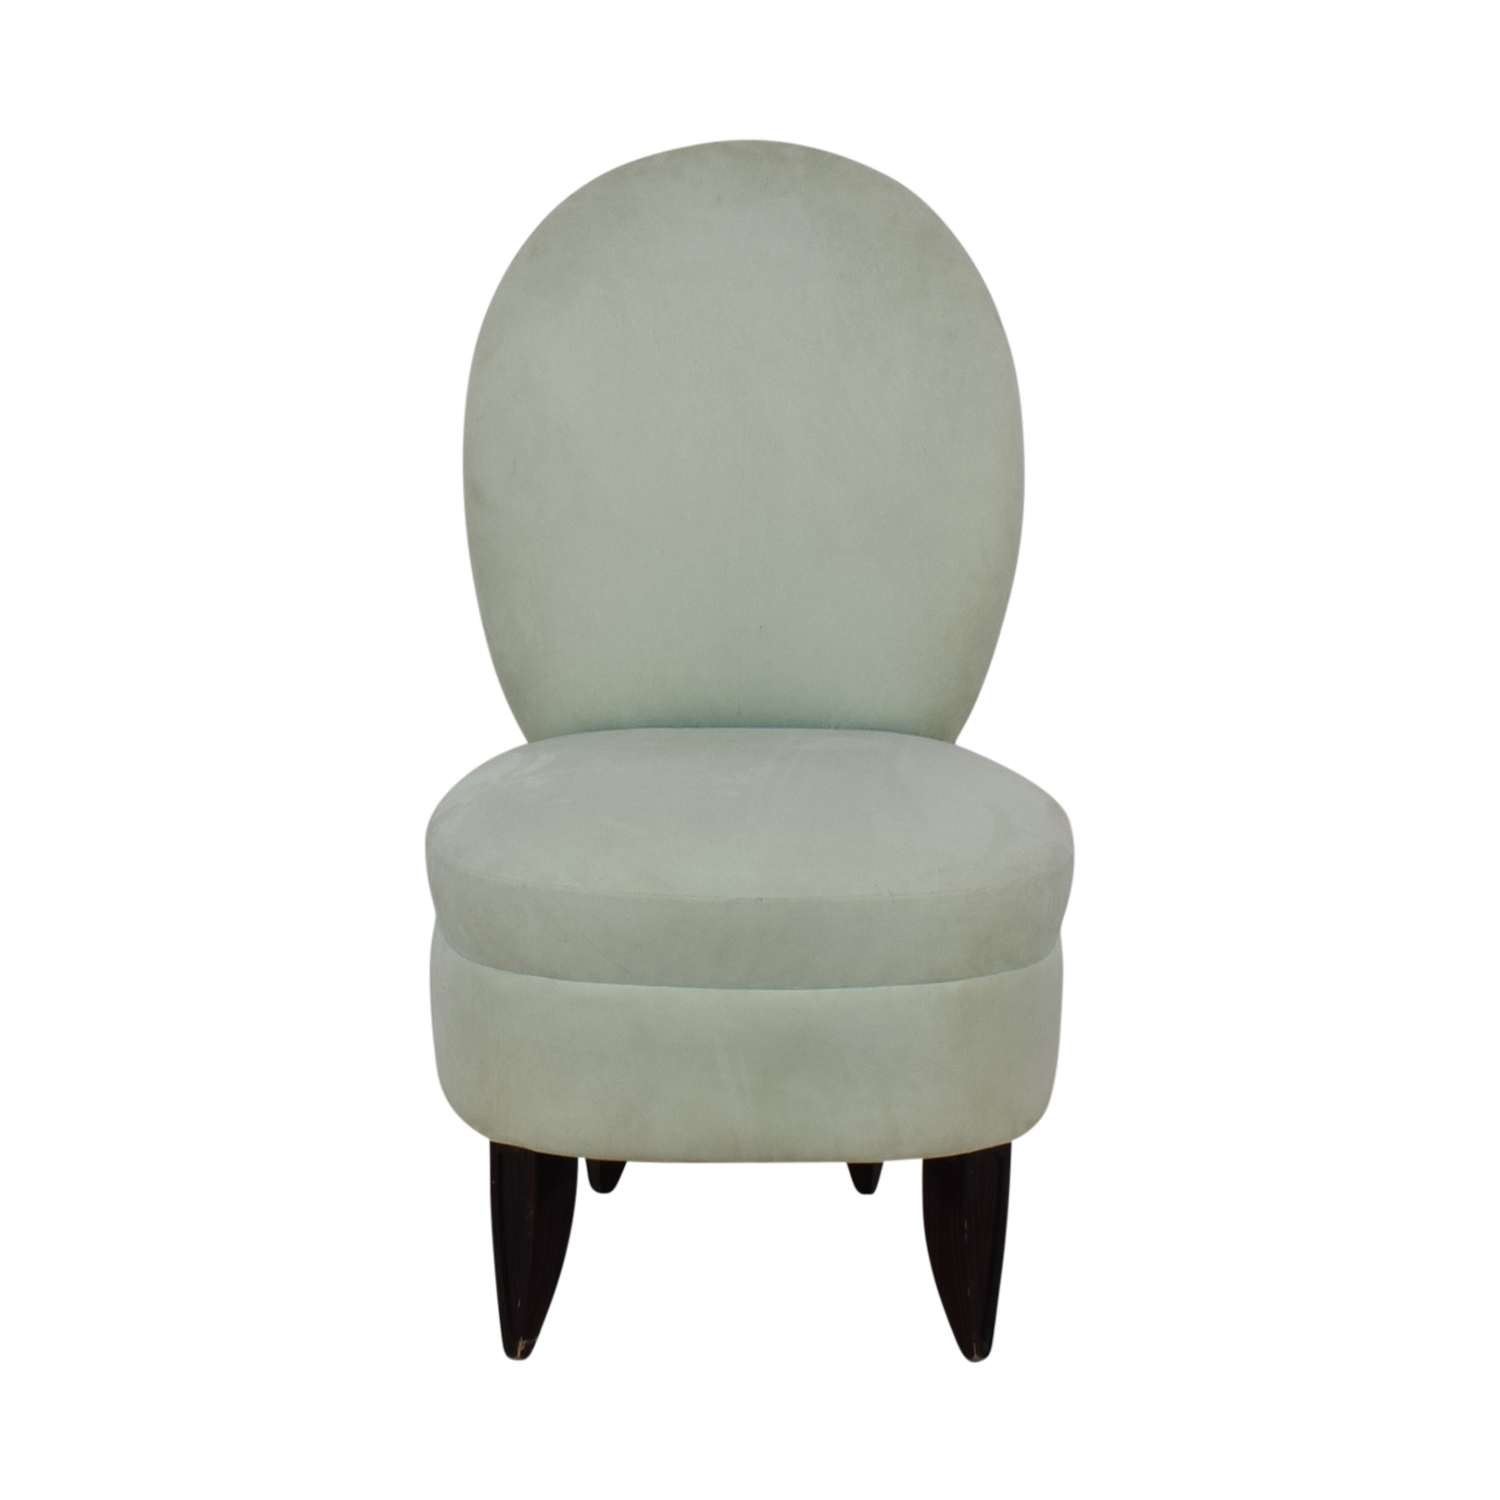 shop Furniture Masters Furniture Masters Green Accent Chair online